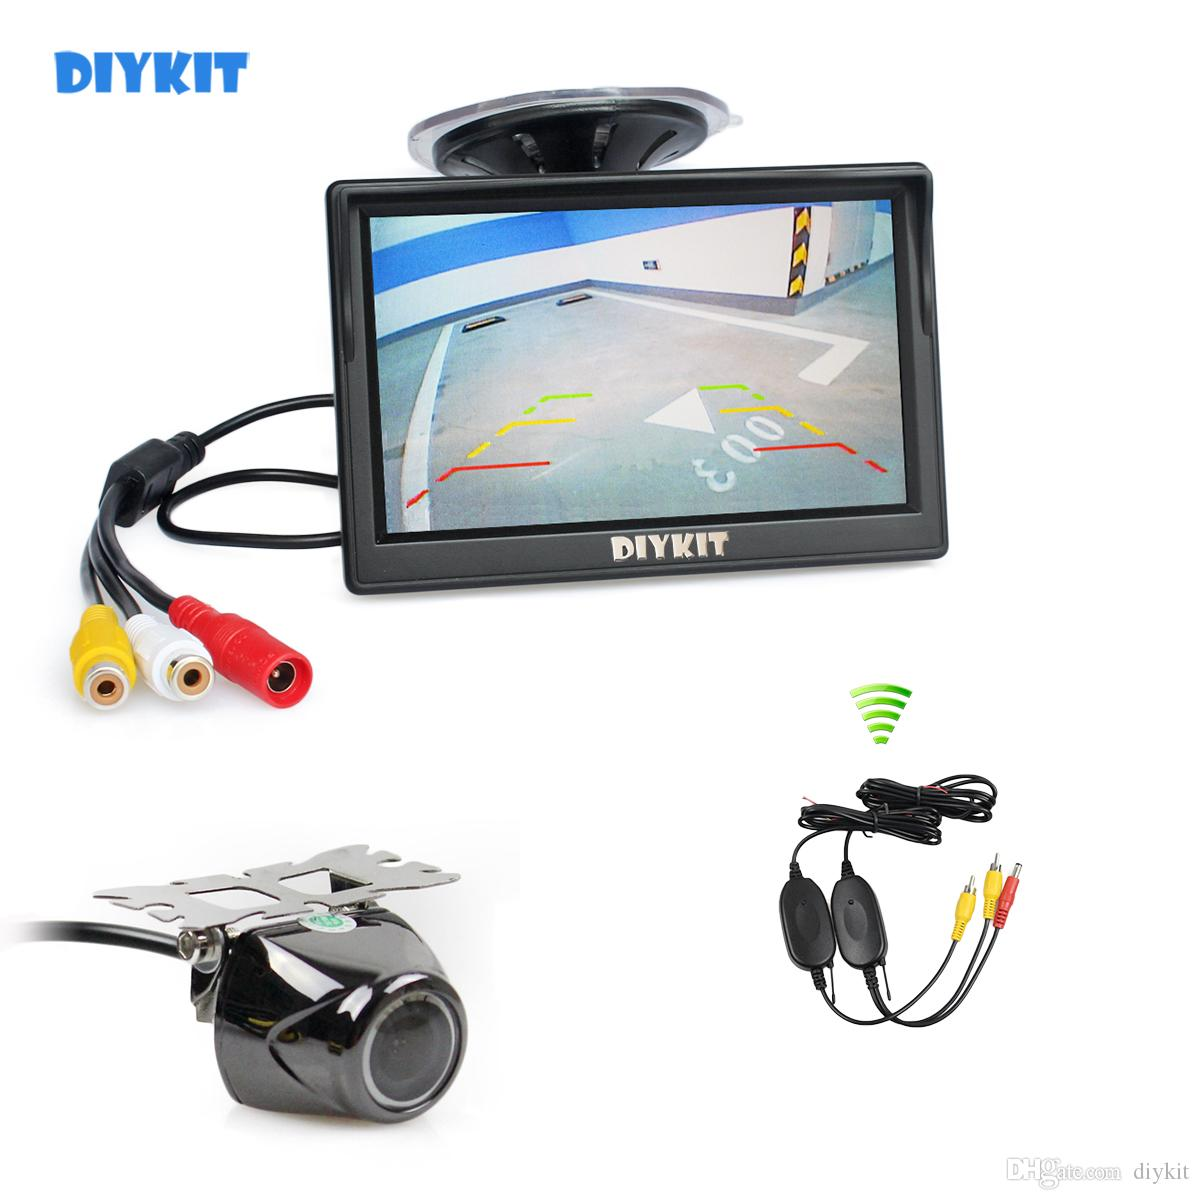 DIYKIT Wireless 5inch TFT LCD Display Car Monitor with Waterproof Night Vision Security Metal Car Rear View Camera